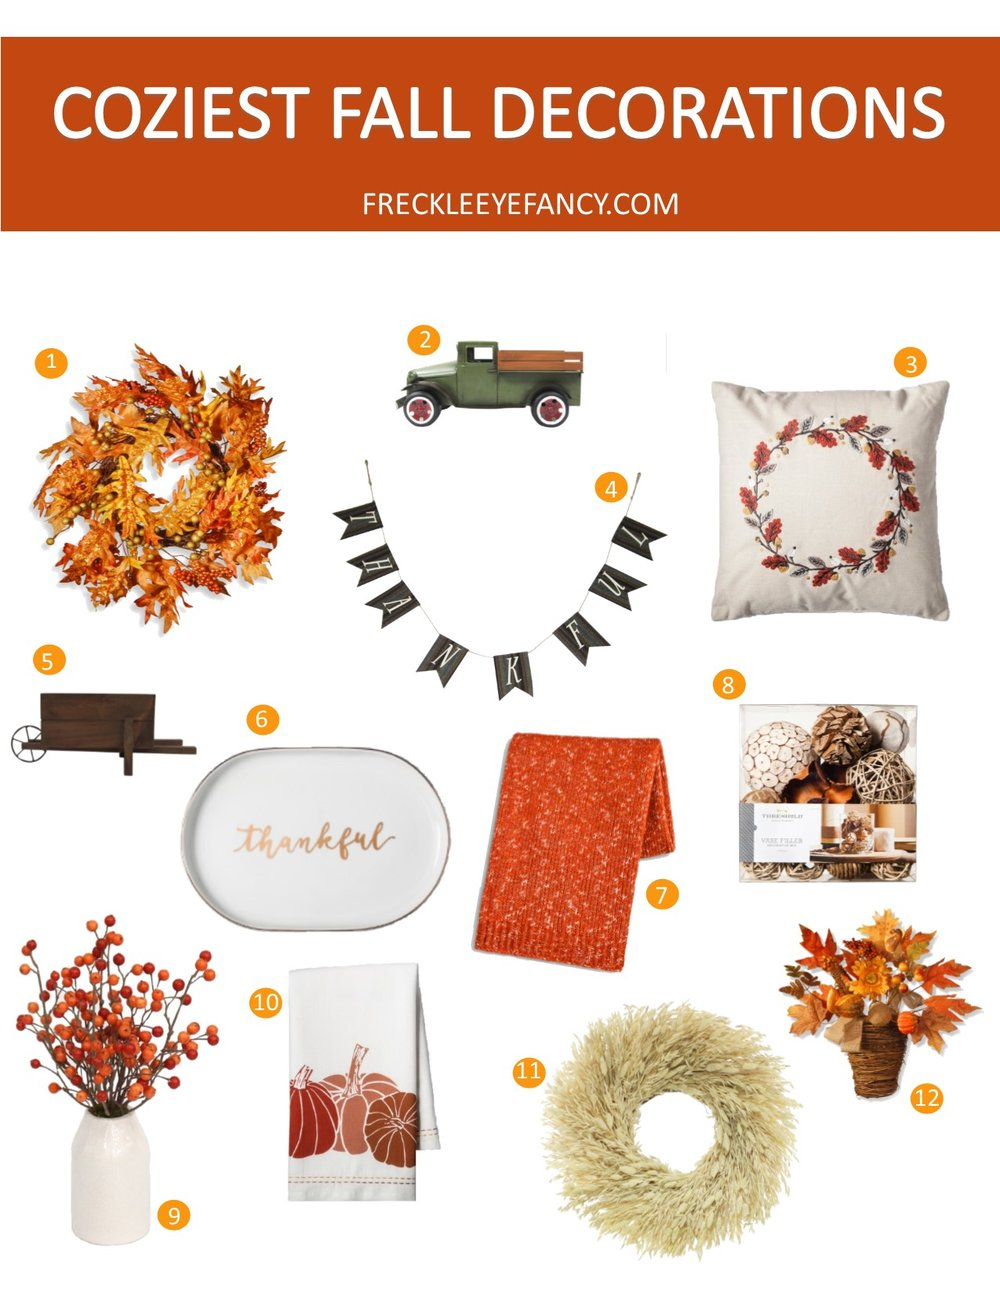 coziest fall decorations with site.jpg